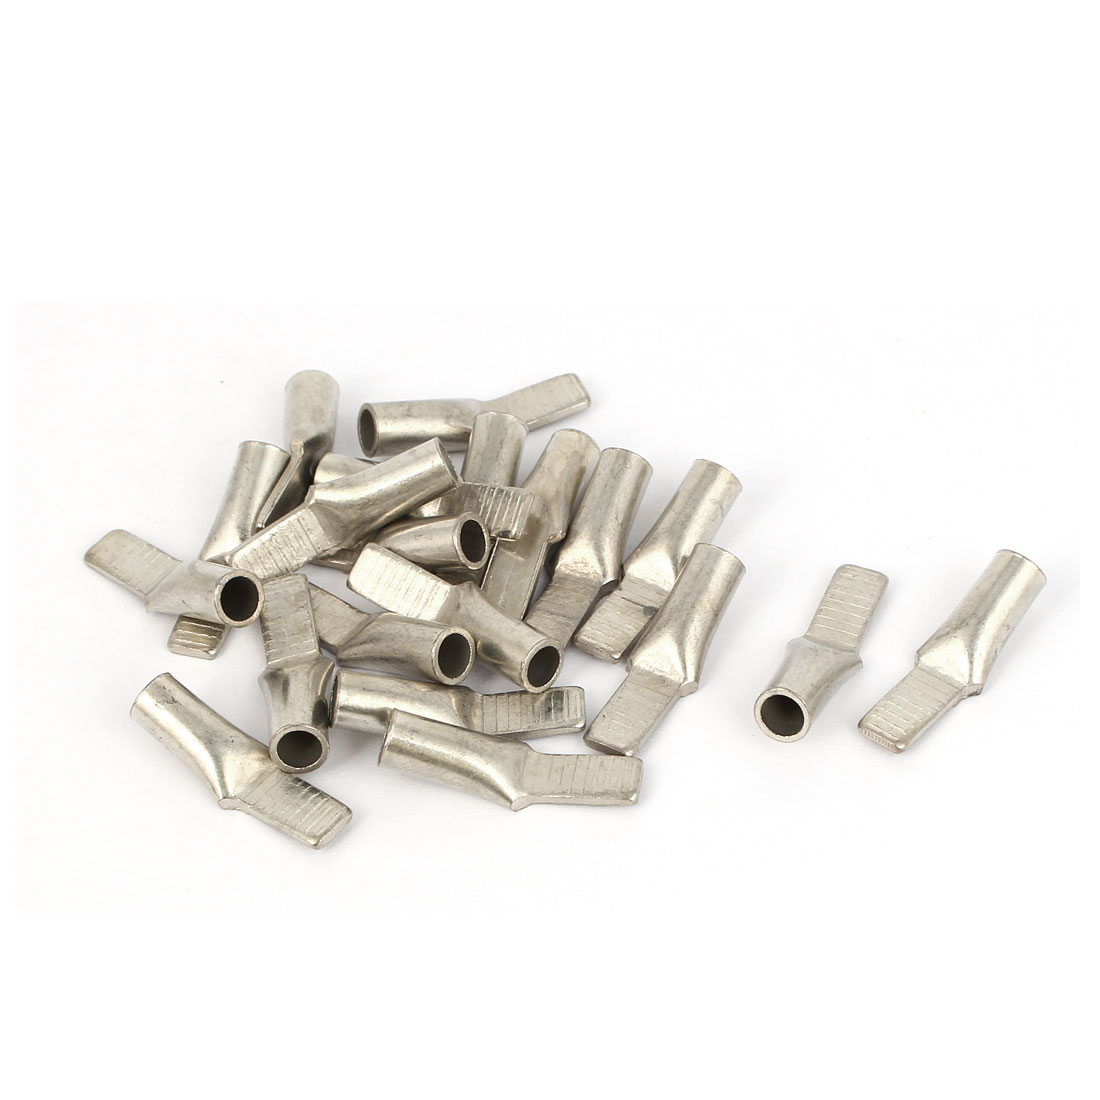 C45-10mm2 Cable Metal Terminal Wiring Connector Silver Tone 20 PCS